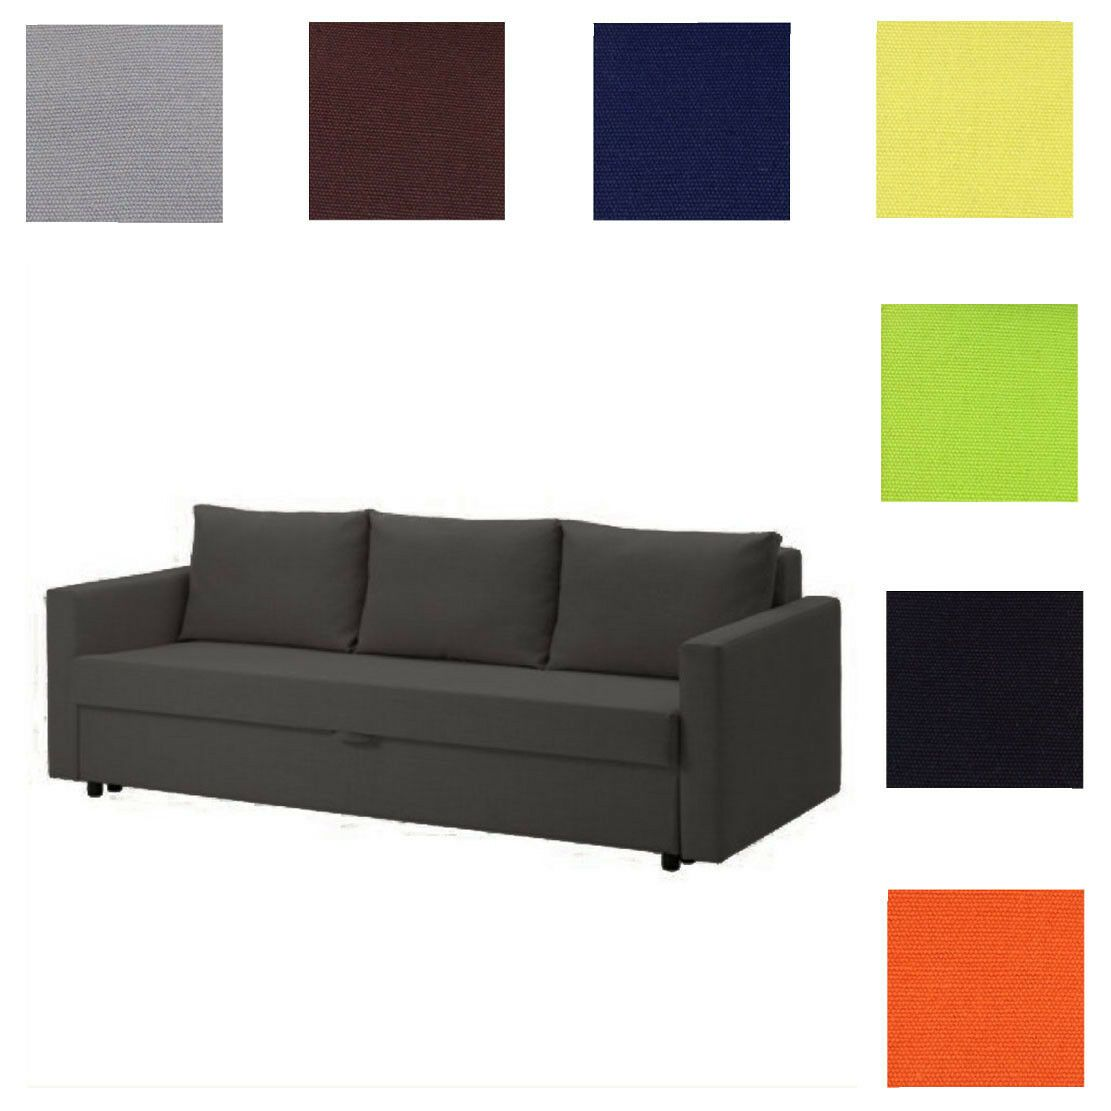 Custom Made Cover Fits Ikea Friheten Sofa Bed Three Seat Sleeper Ikea Sofa Ideas Of Ikea Sofa Sofa Ikea Ikeasofa Ikea Sofa Bed Covers Ikea Sofa Sale